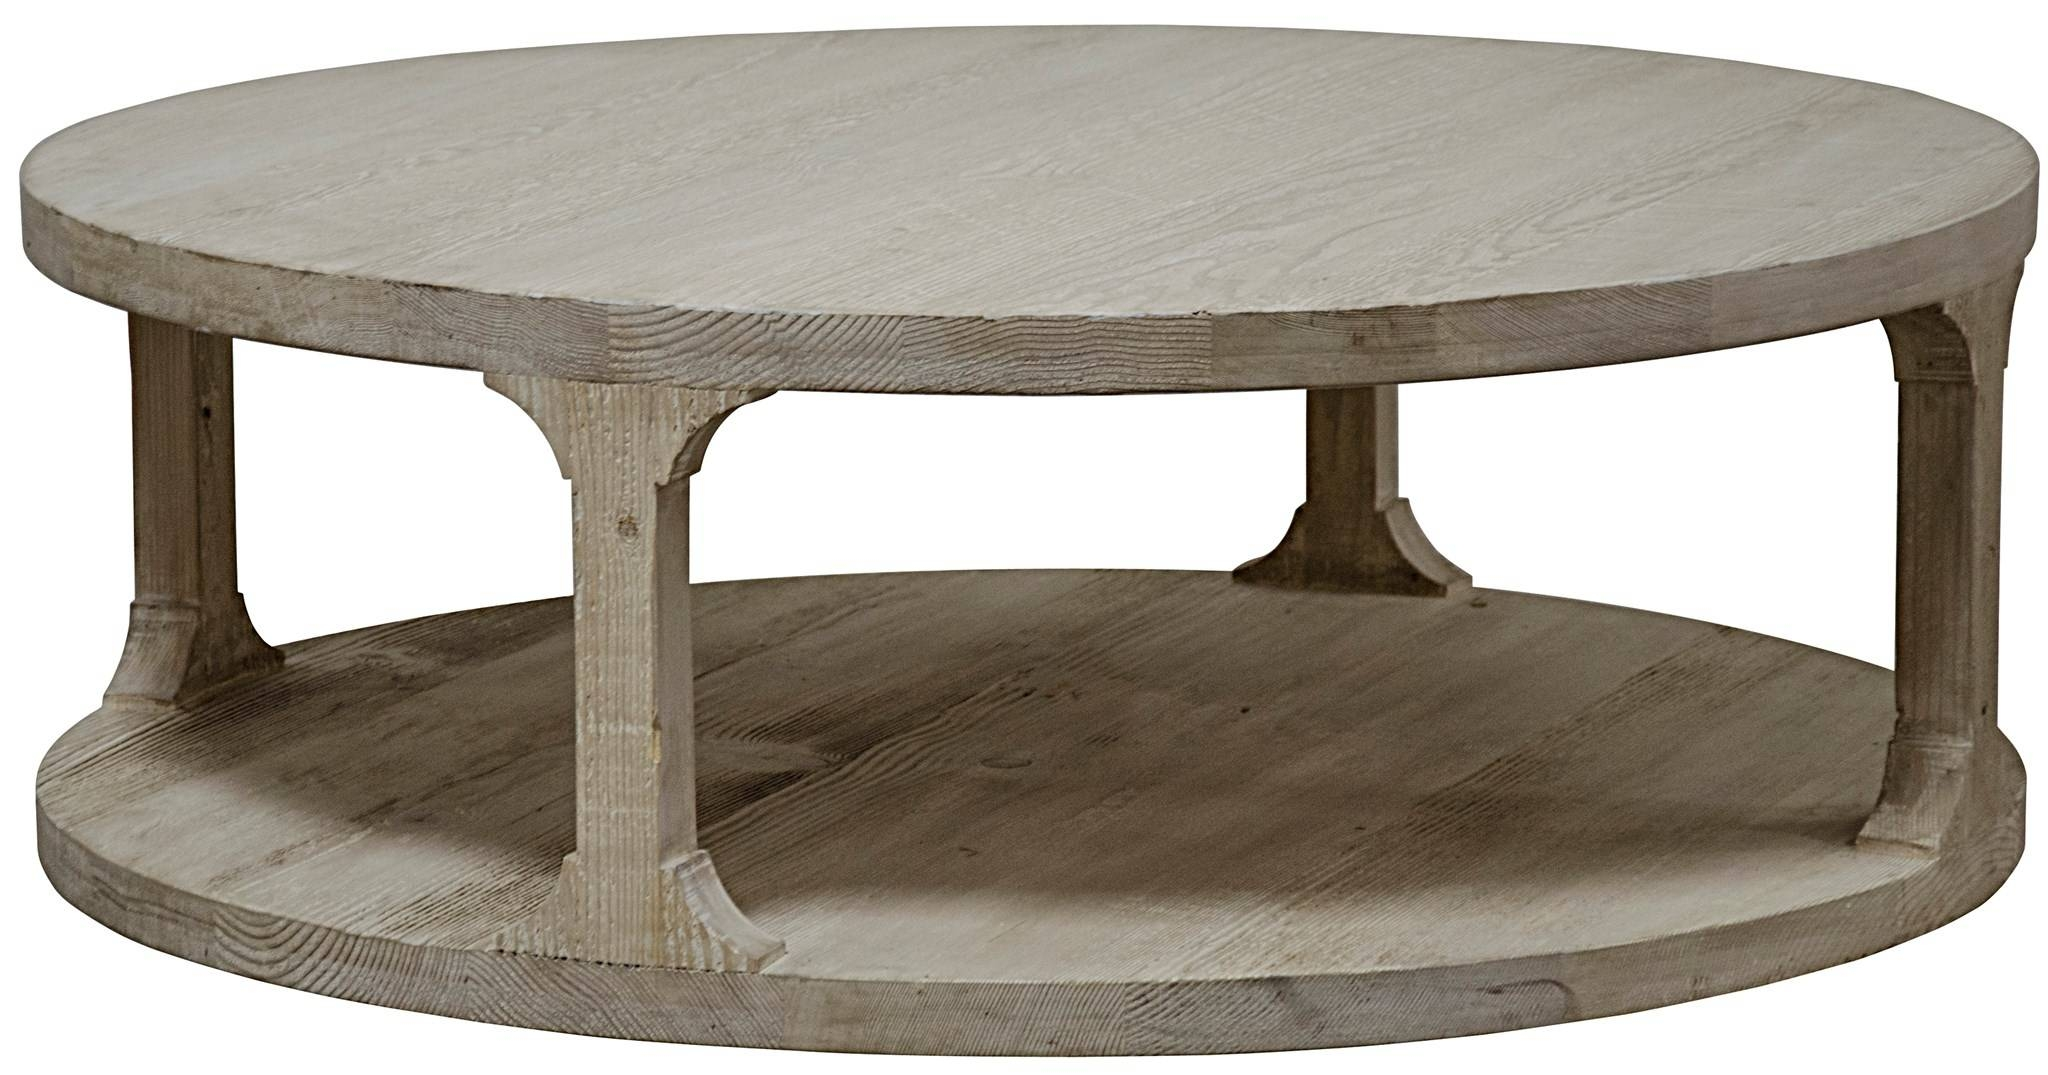 Cfc :: For Circular Coffee Tables (View 5 of 30)